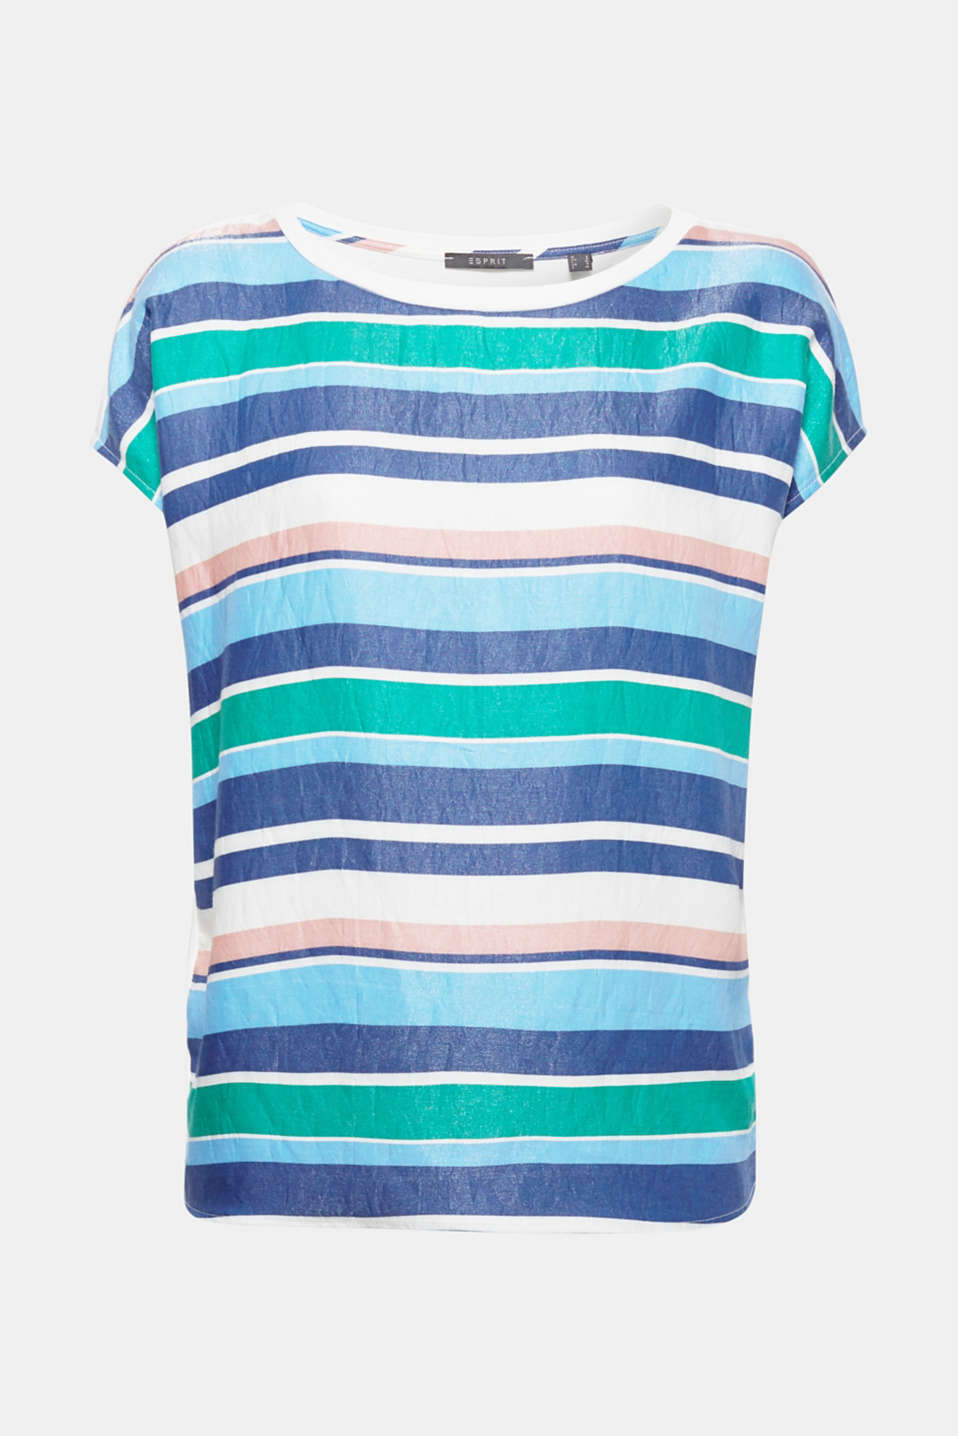 Multi-coloured stripes with a technical sheen give this material mix shirt its modern look!